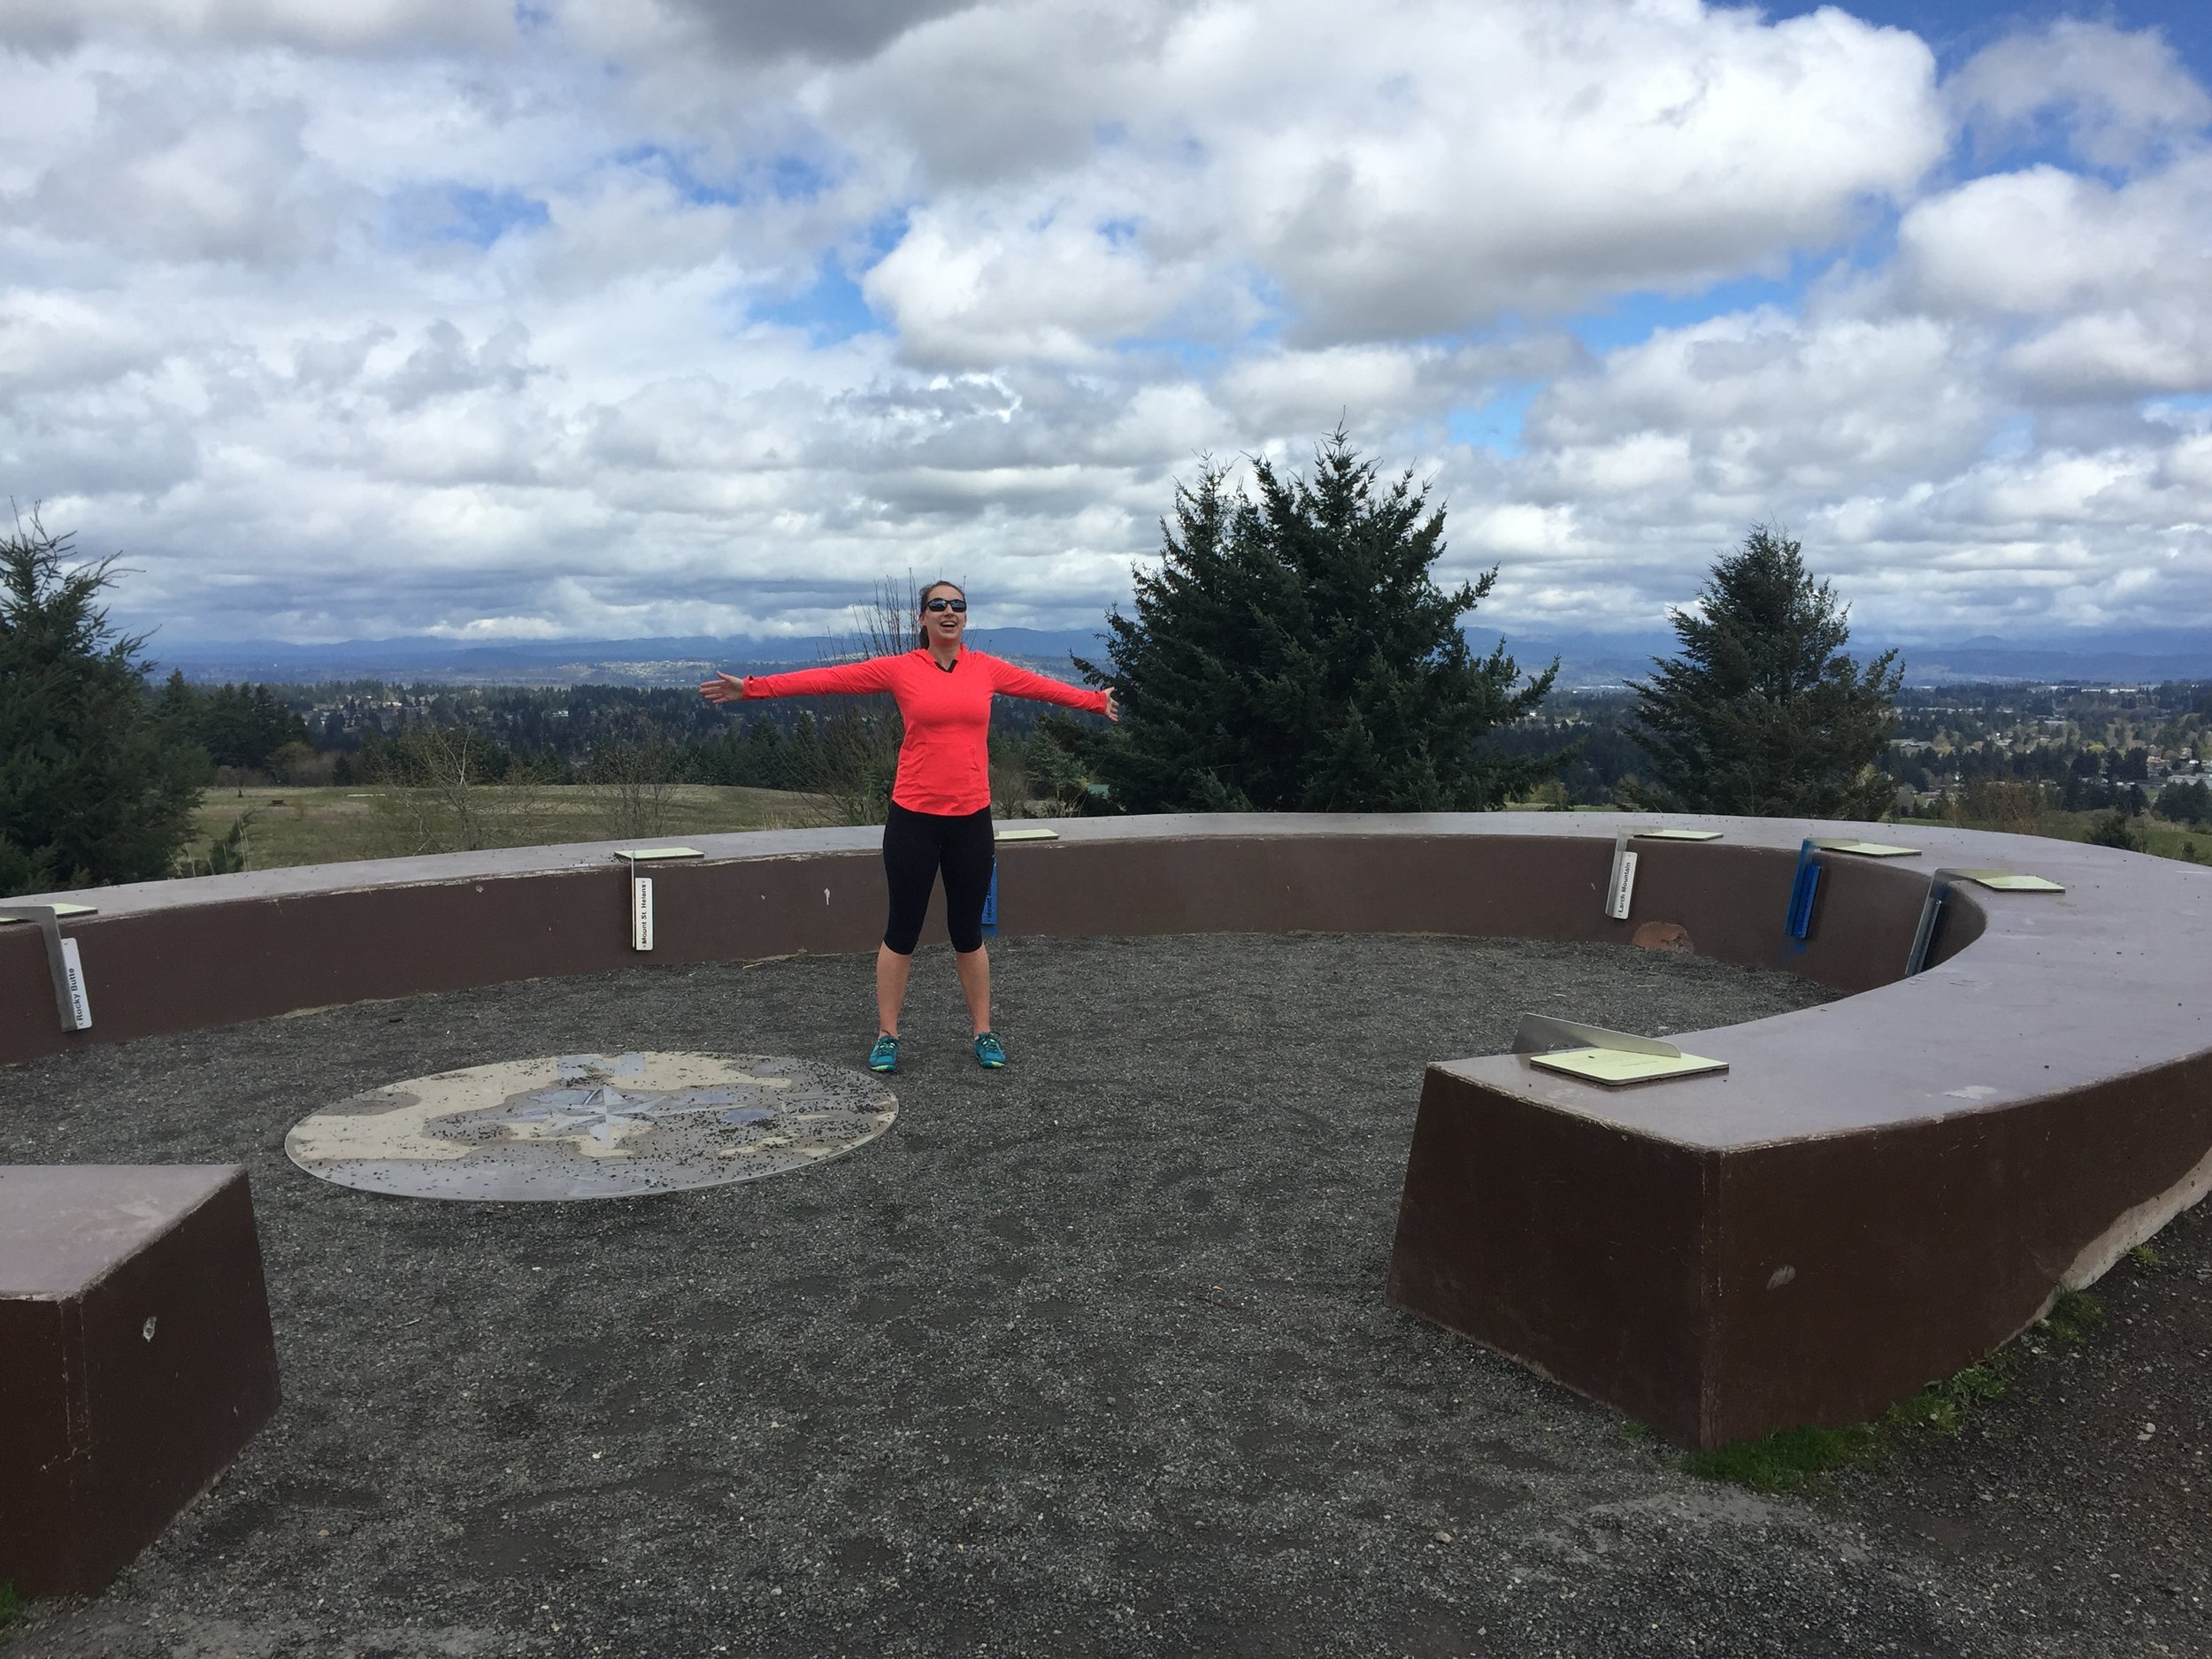 Standing in the middle of the the mountain finder circle at the summit of the volcano that is Powell Butte. On a clear day you can see up to 10 mountain peaks!